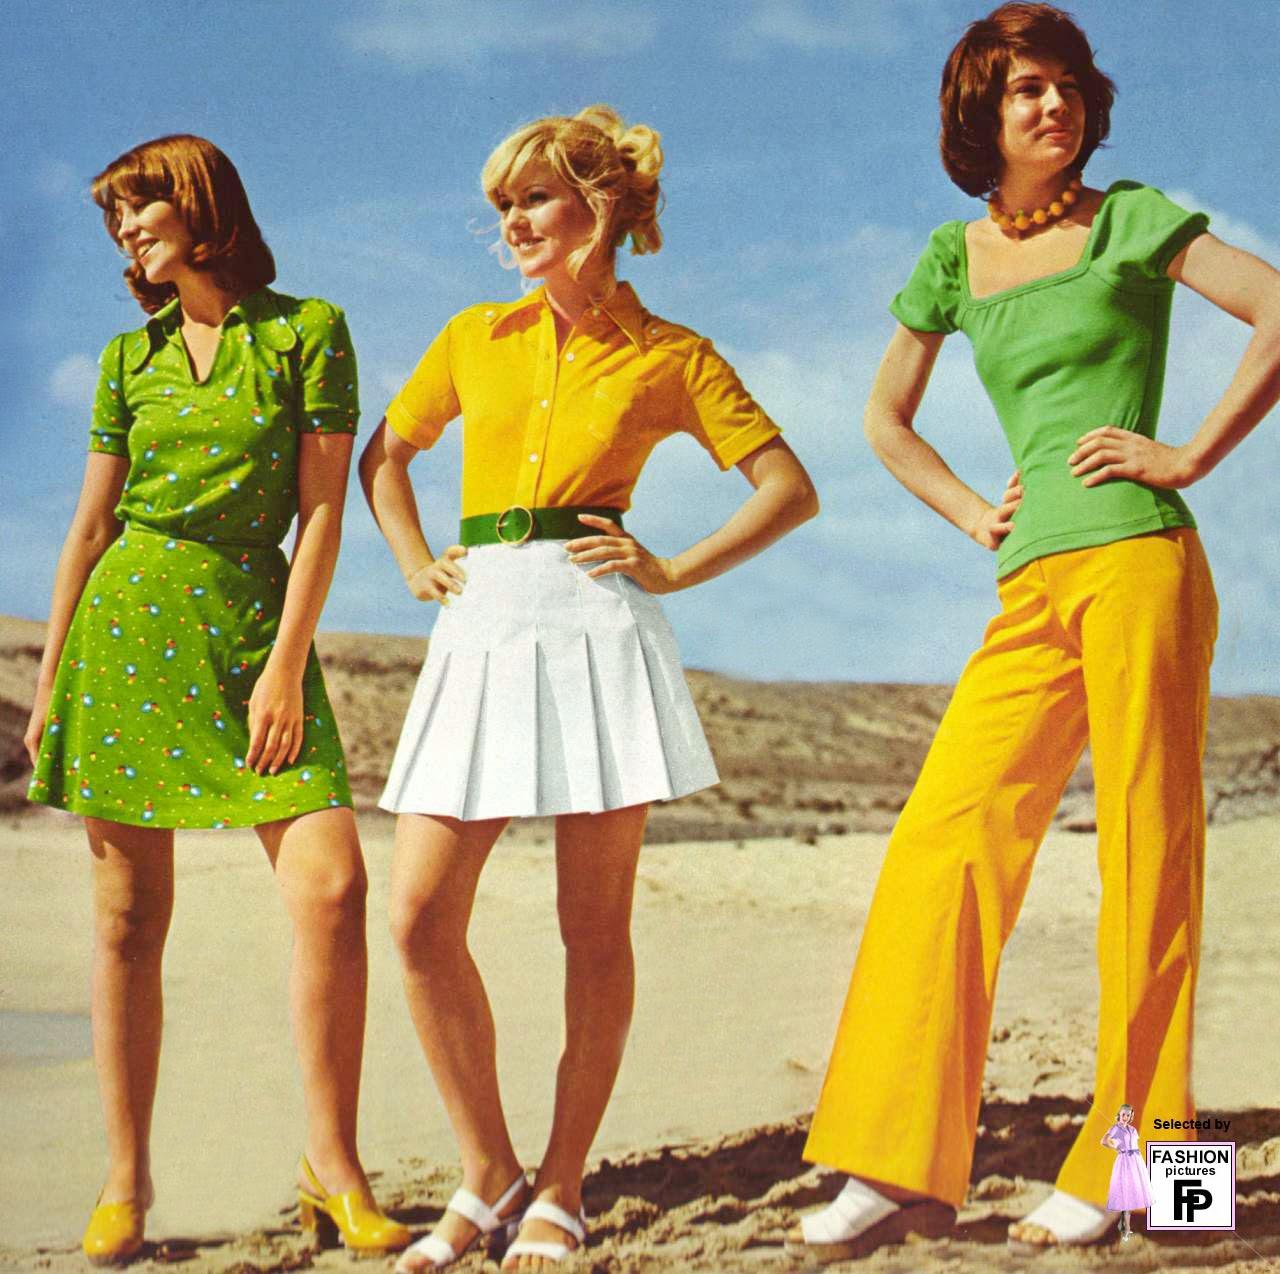 1970s Fashion Vintage everyday: 50 awesome and colorful photoshoots of